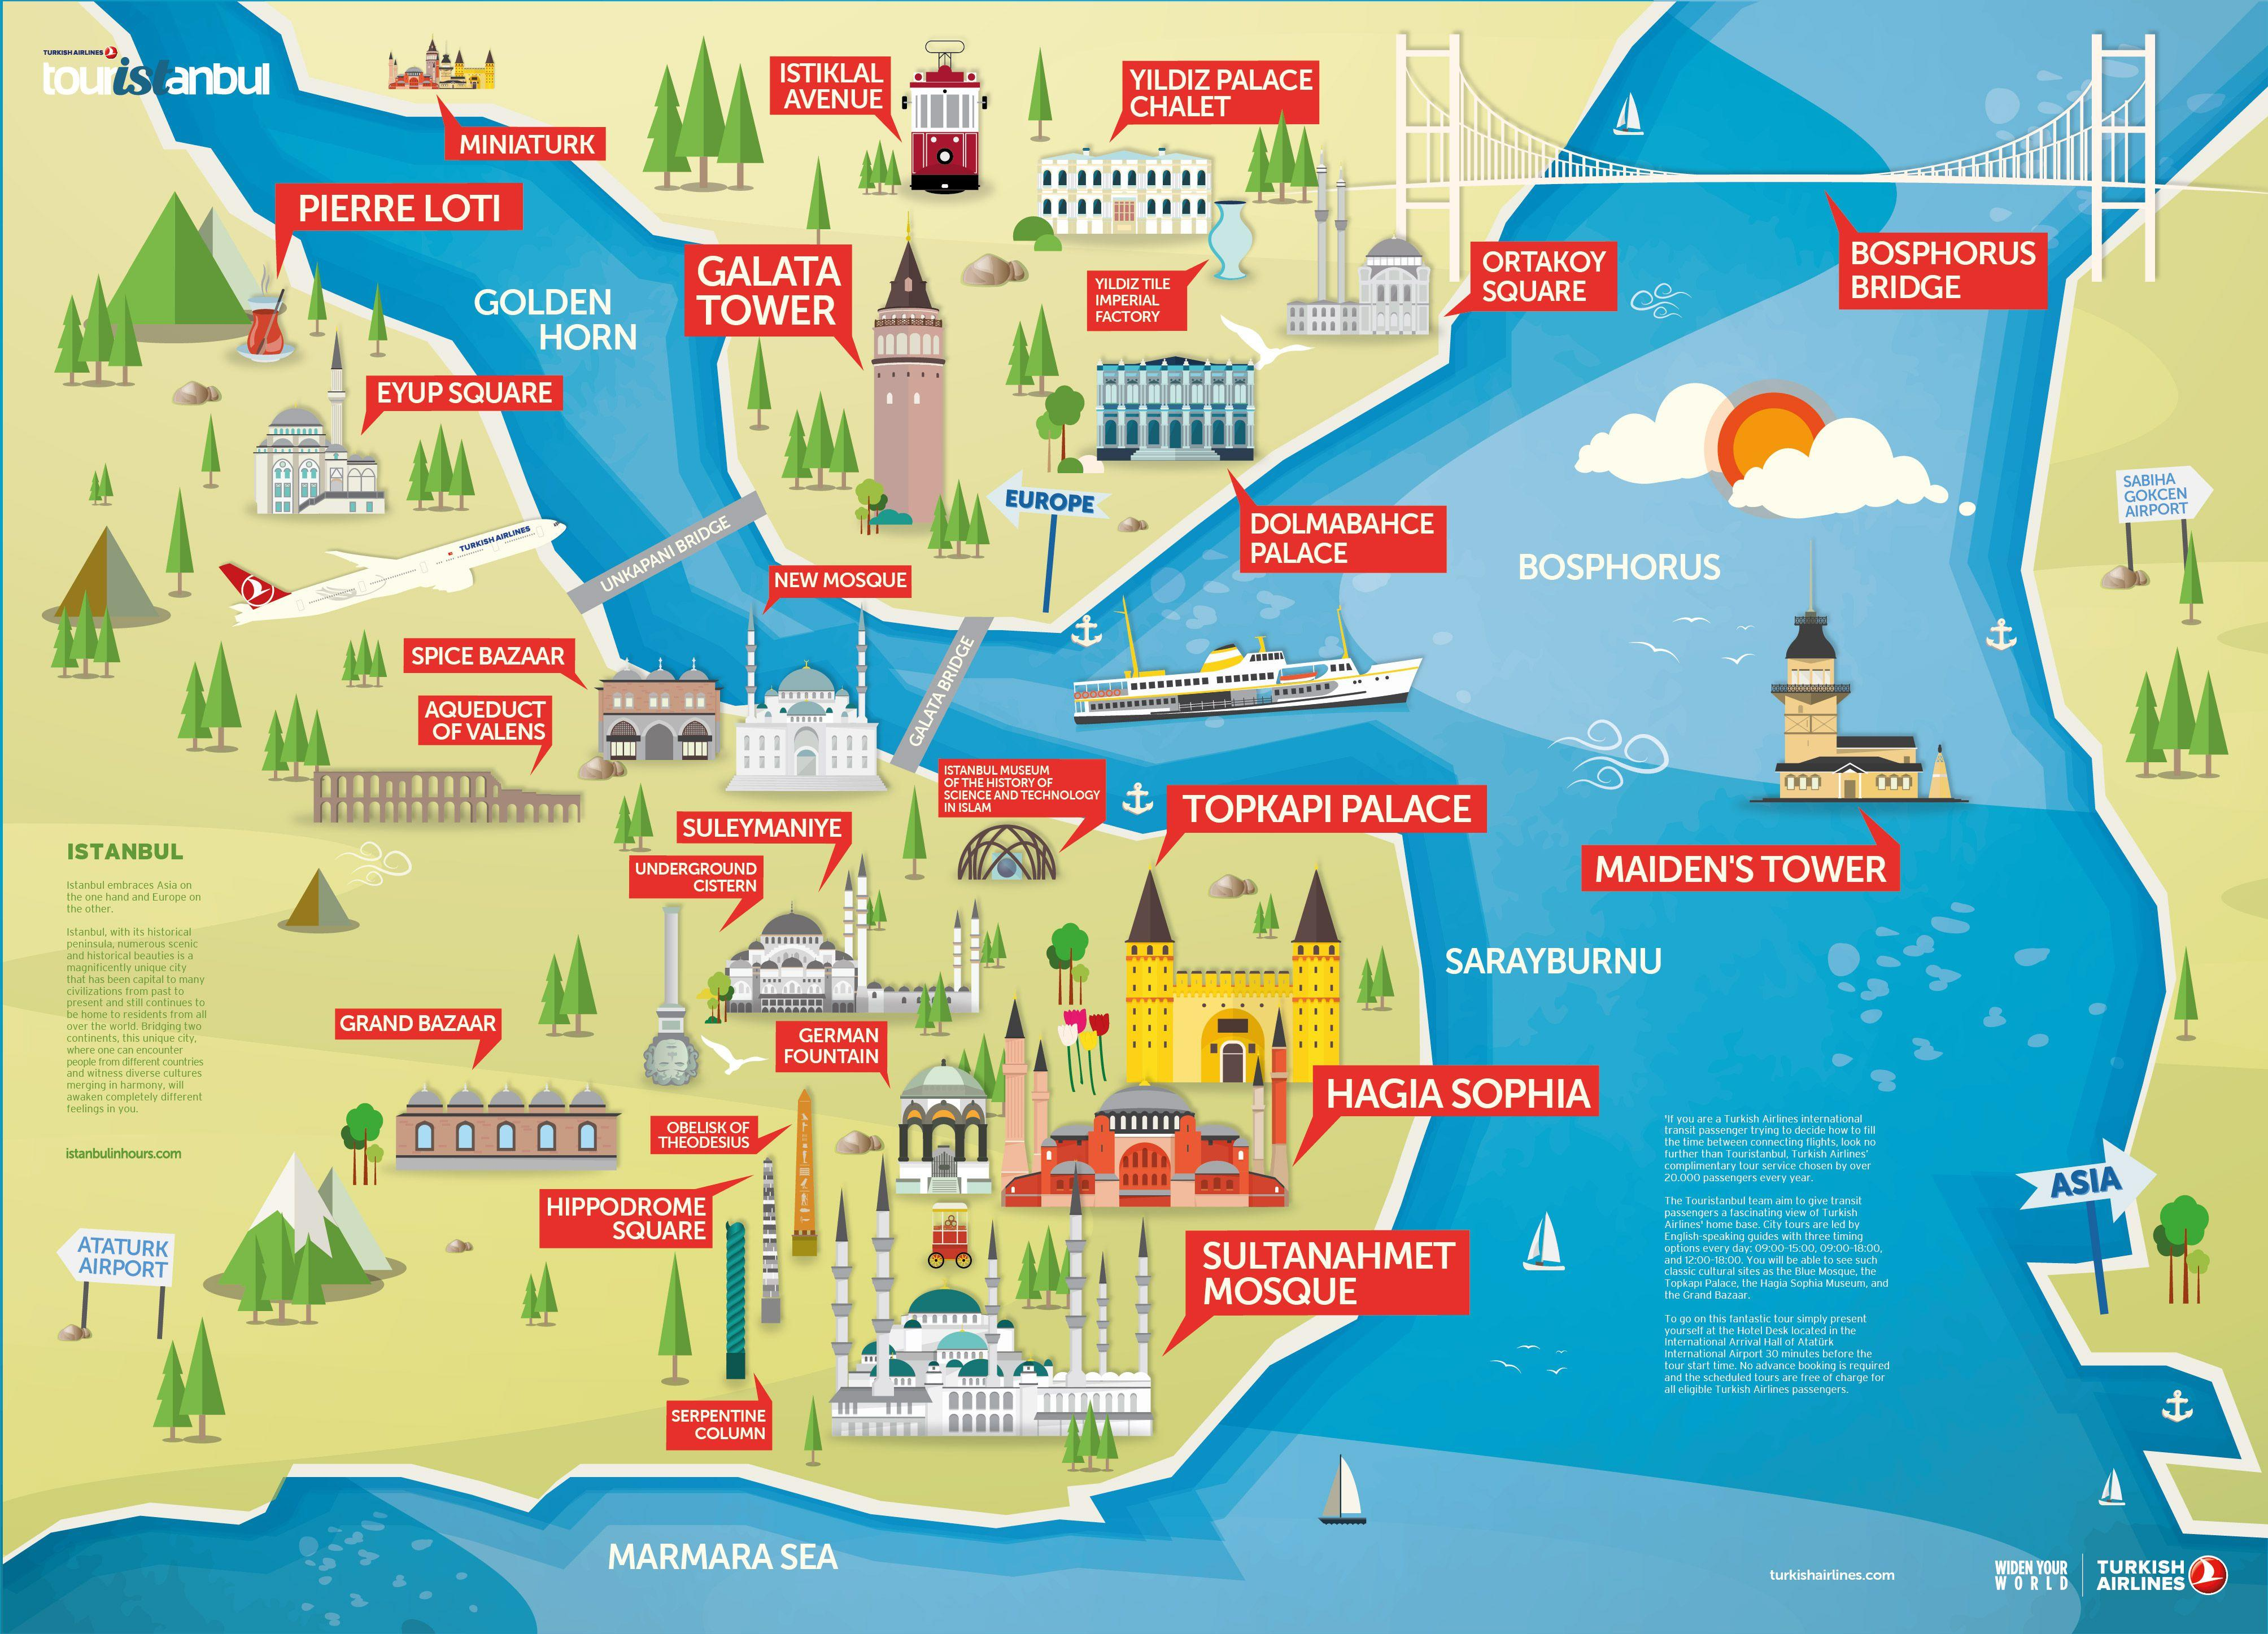 Istanbul Tourist Attractions Map PDF - Istanbul Clues